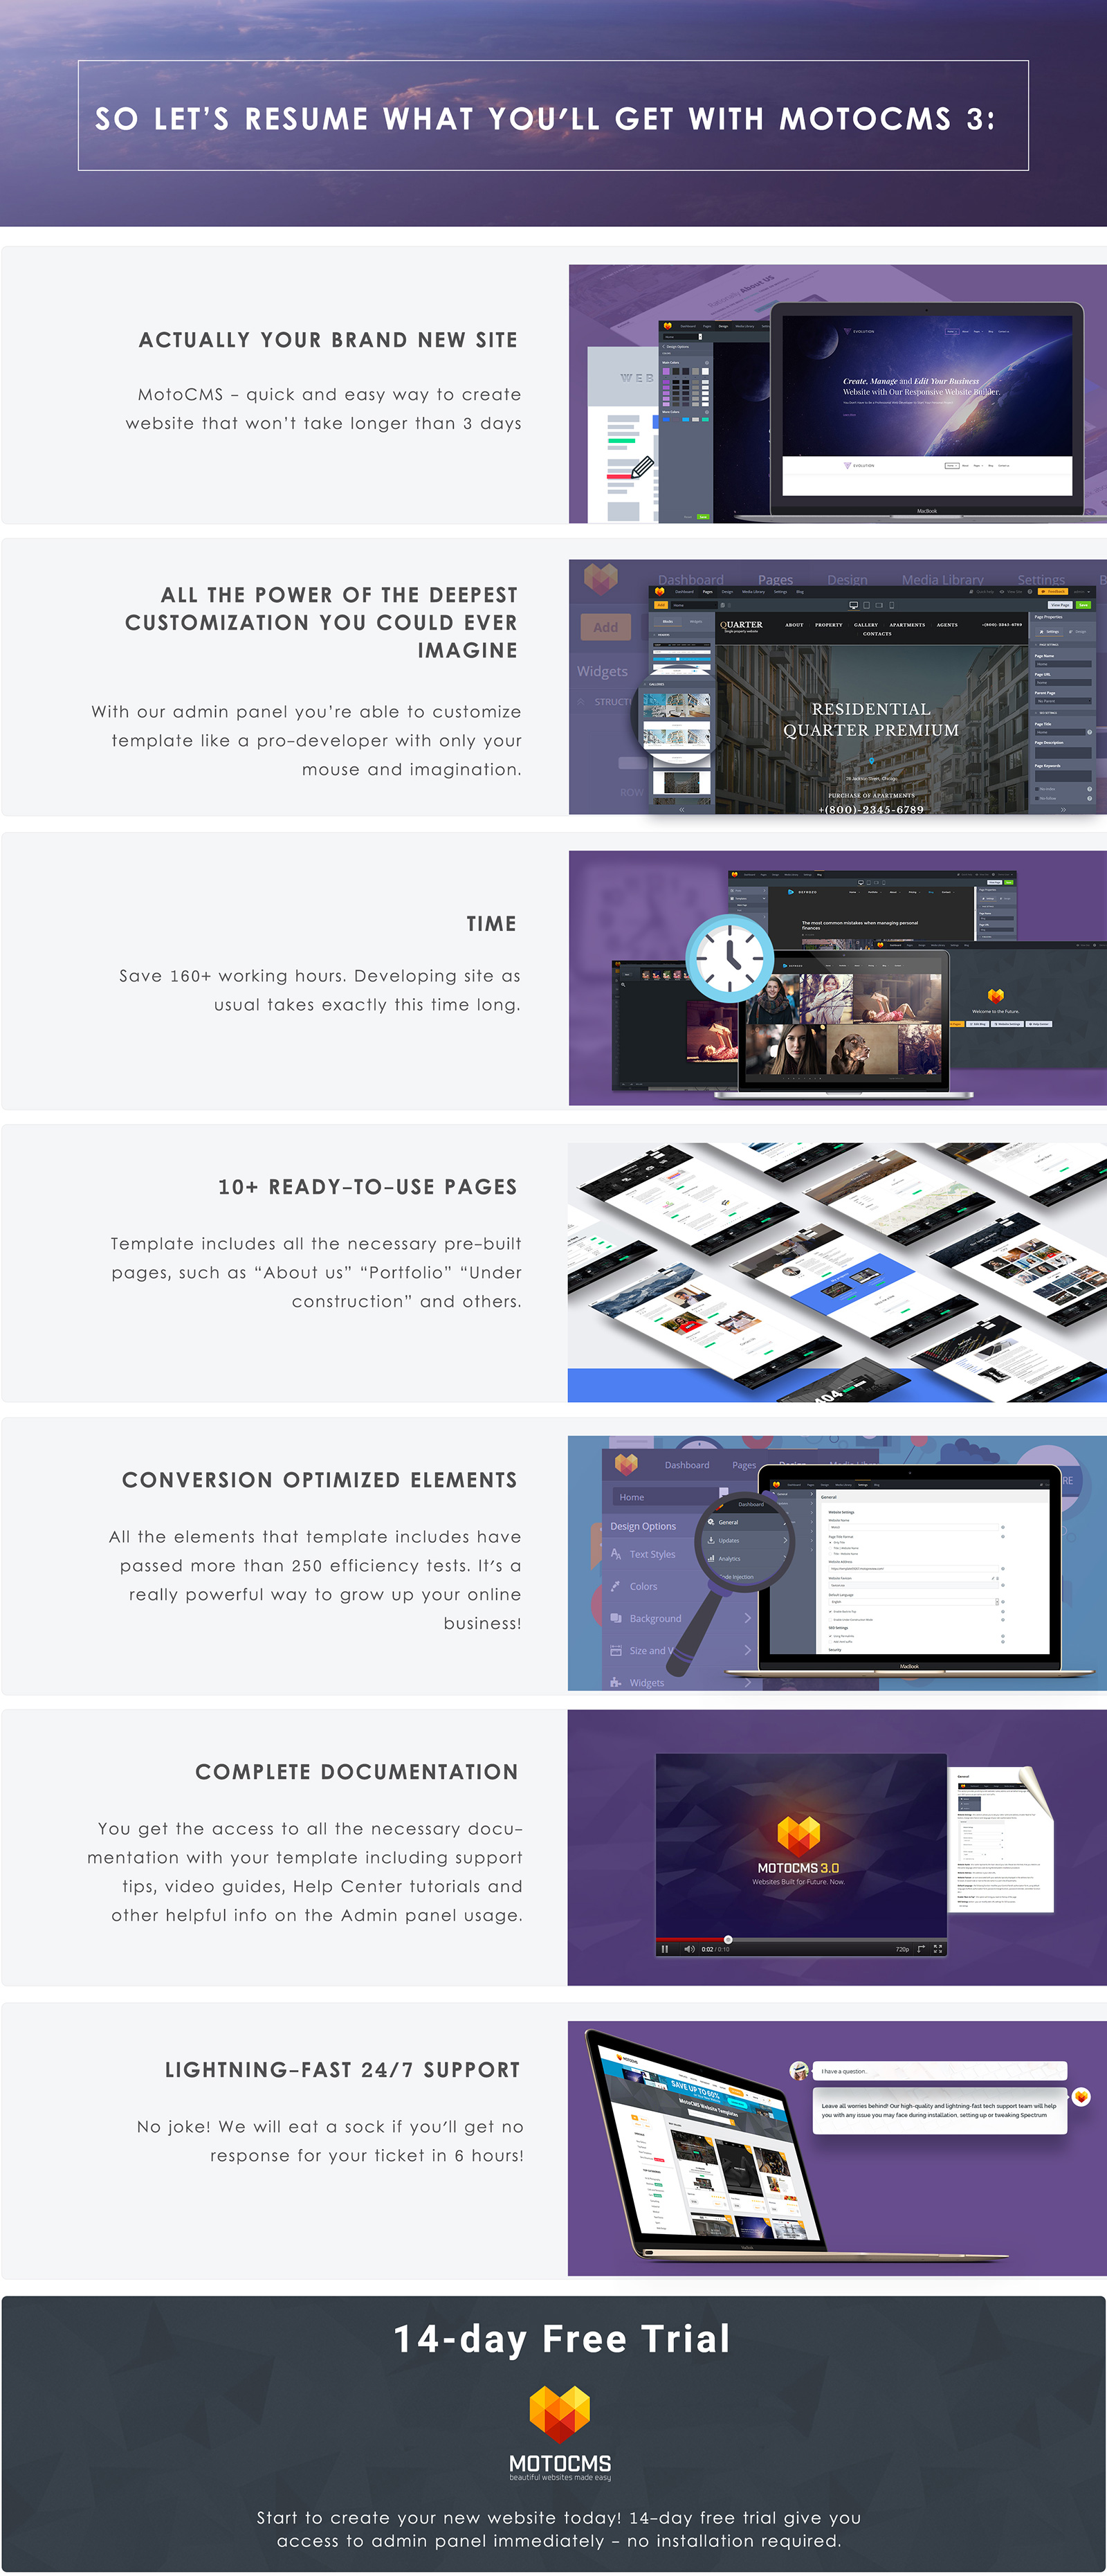 Industrial Manufacturing Moto CMS 3 Template